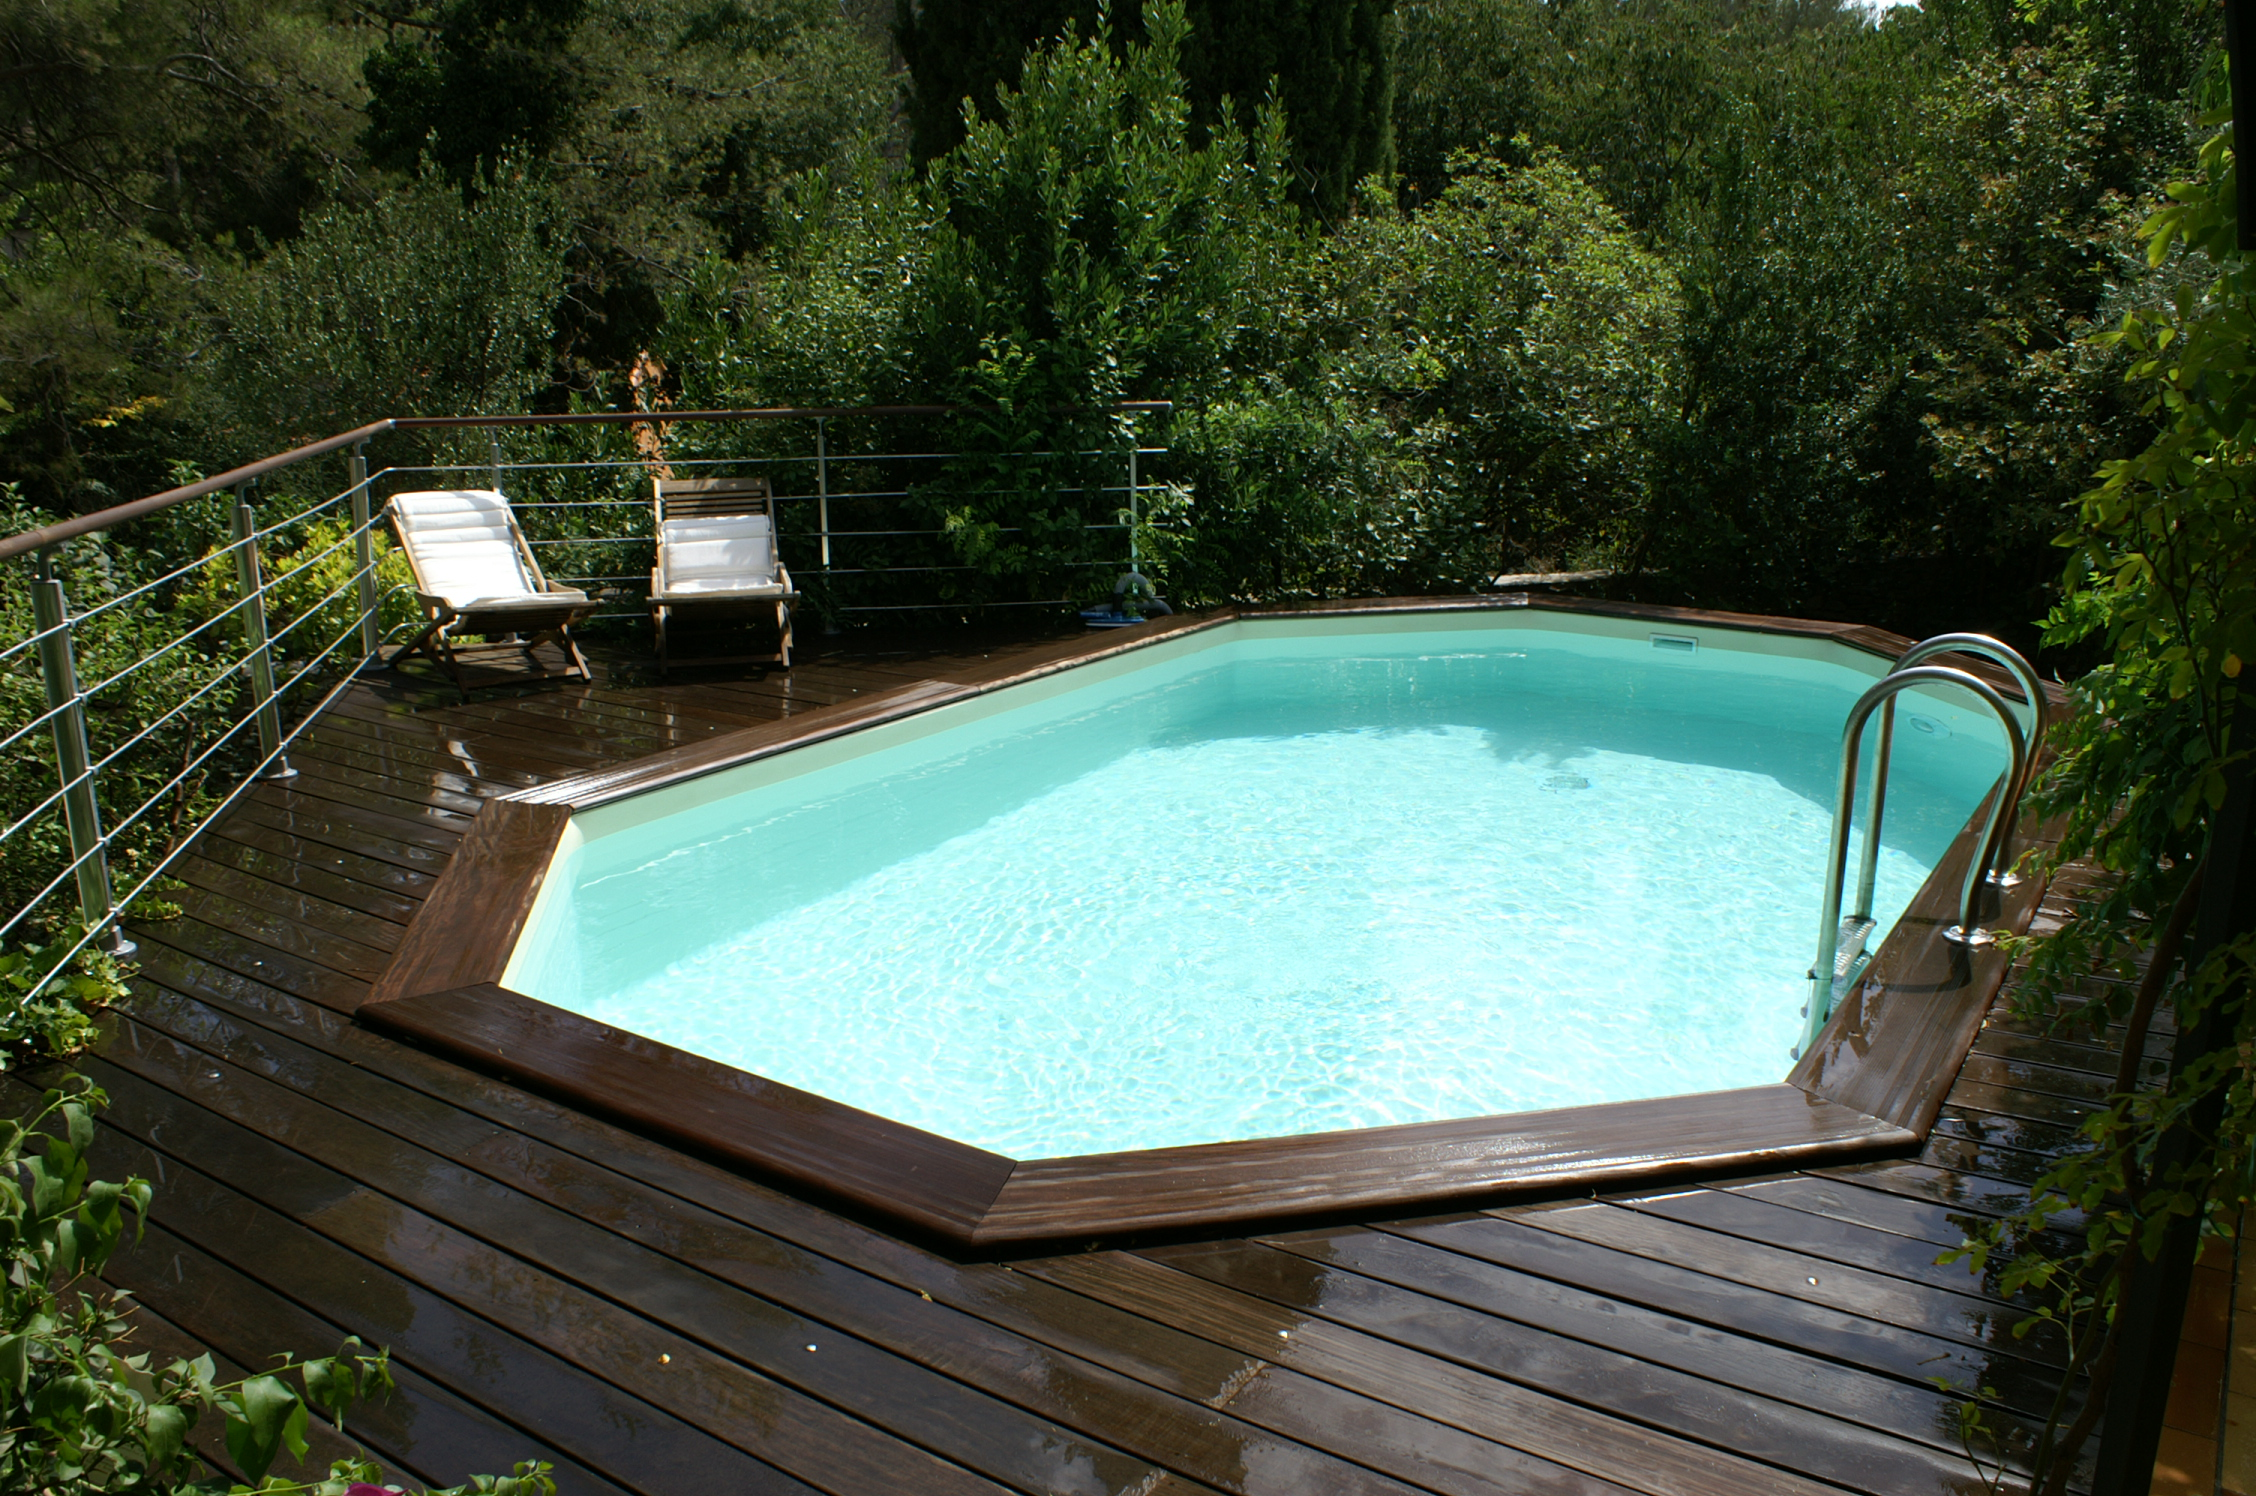 Piscine en kit hors sol piscine en kit hors sol maeva for Piscine bois en kit